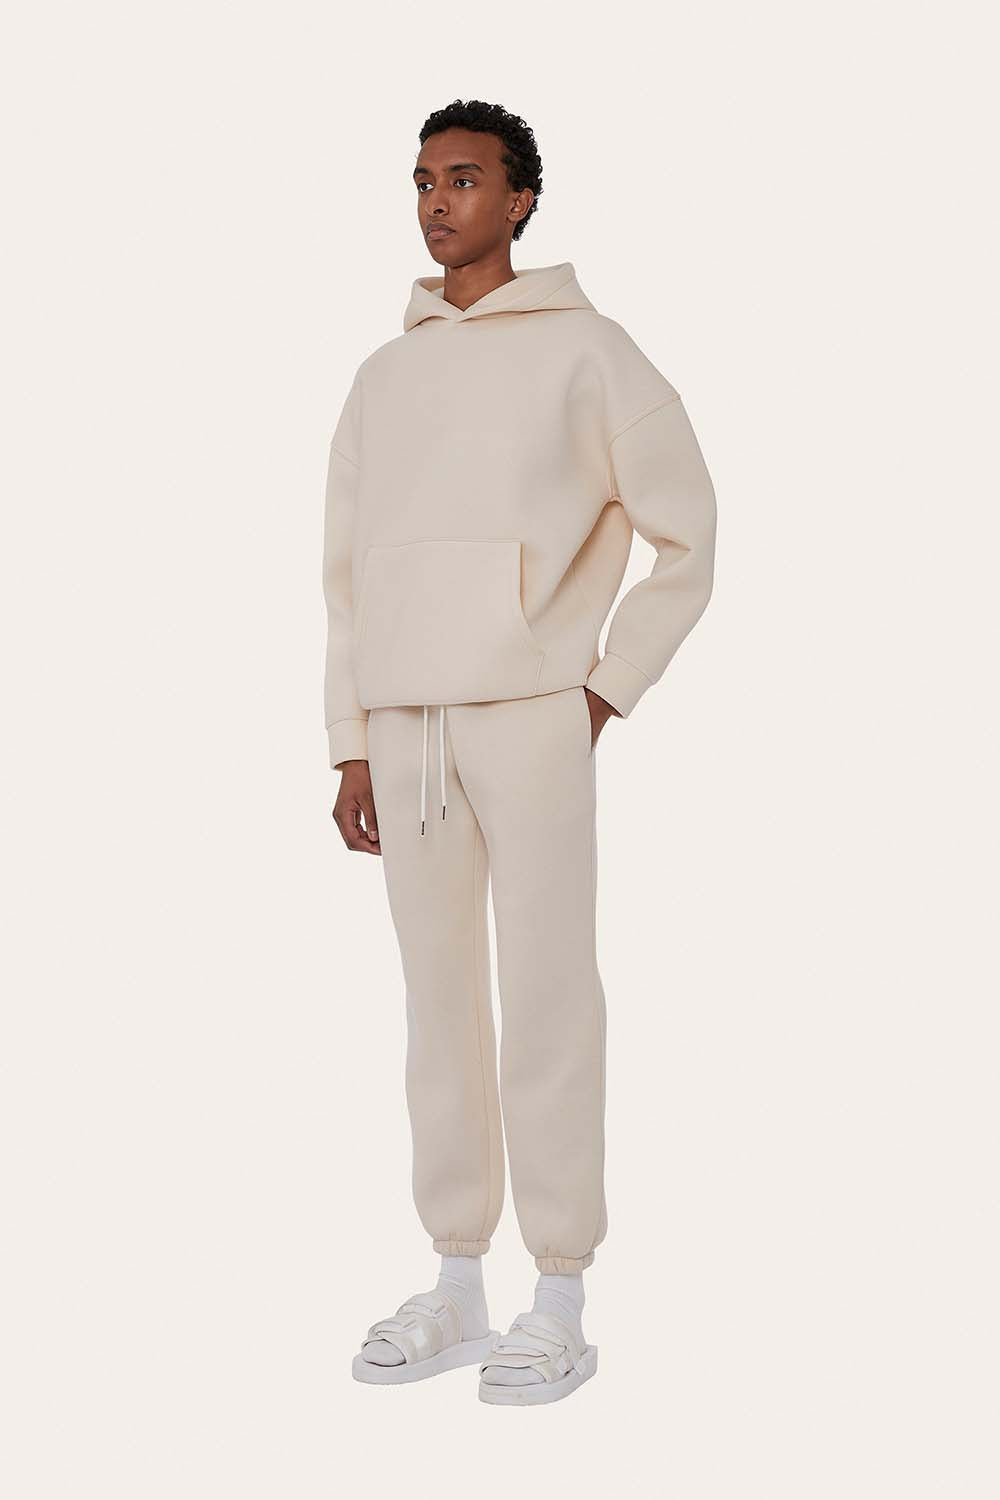 Seventh product - Airport Suit Hoodie in Milk White